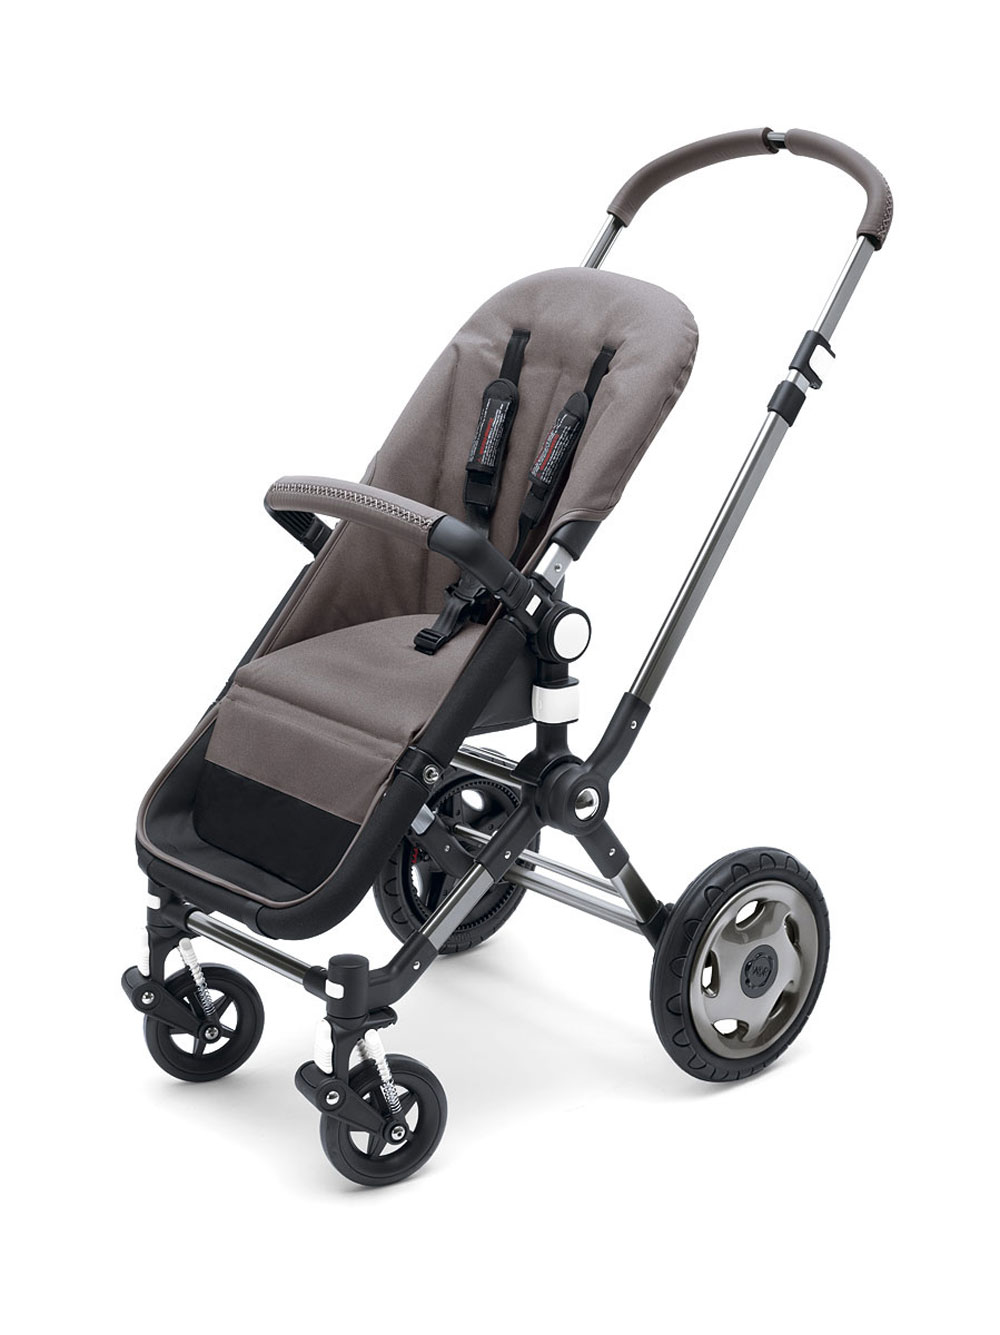 my first car - viktor&rolf for bugaboo